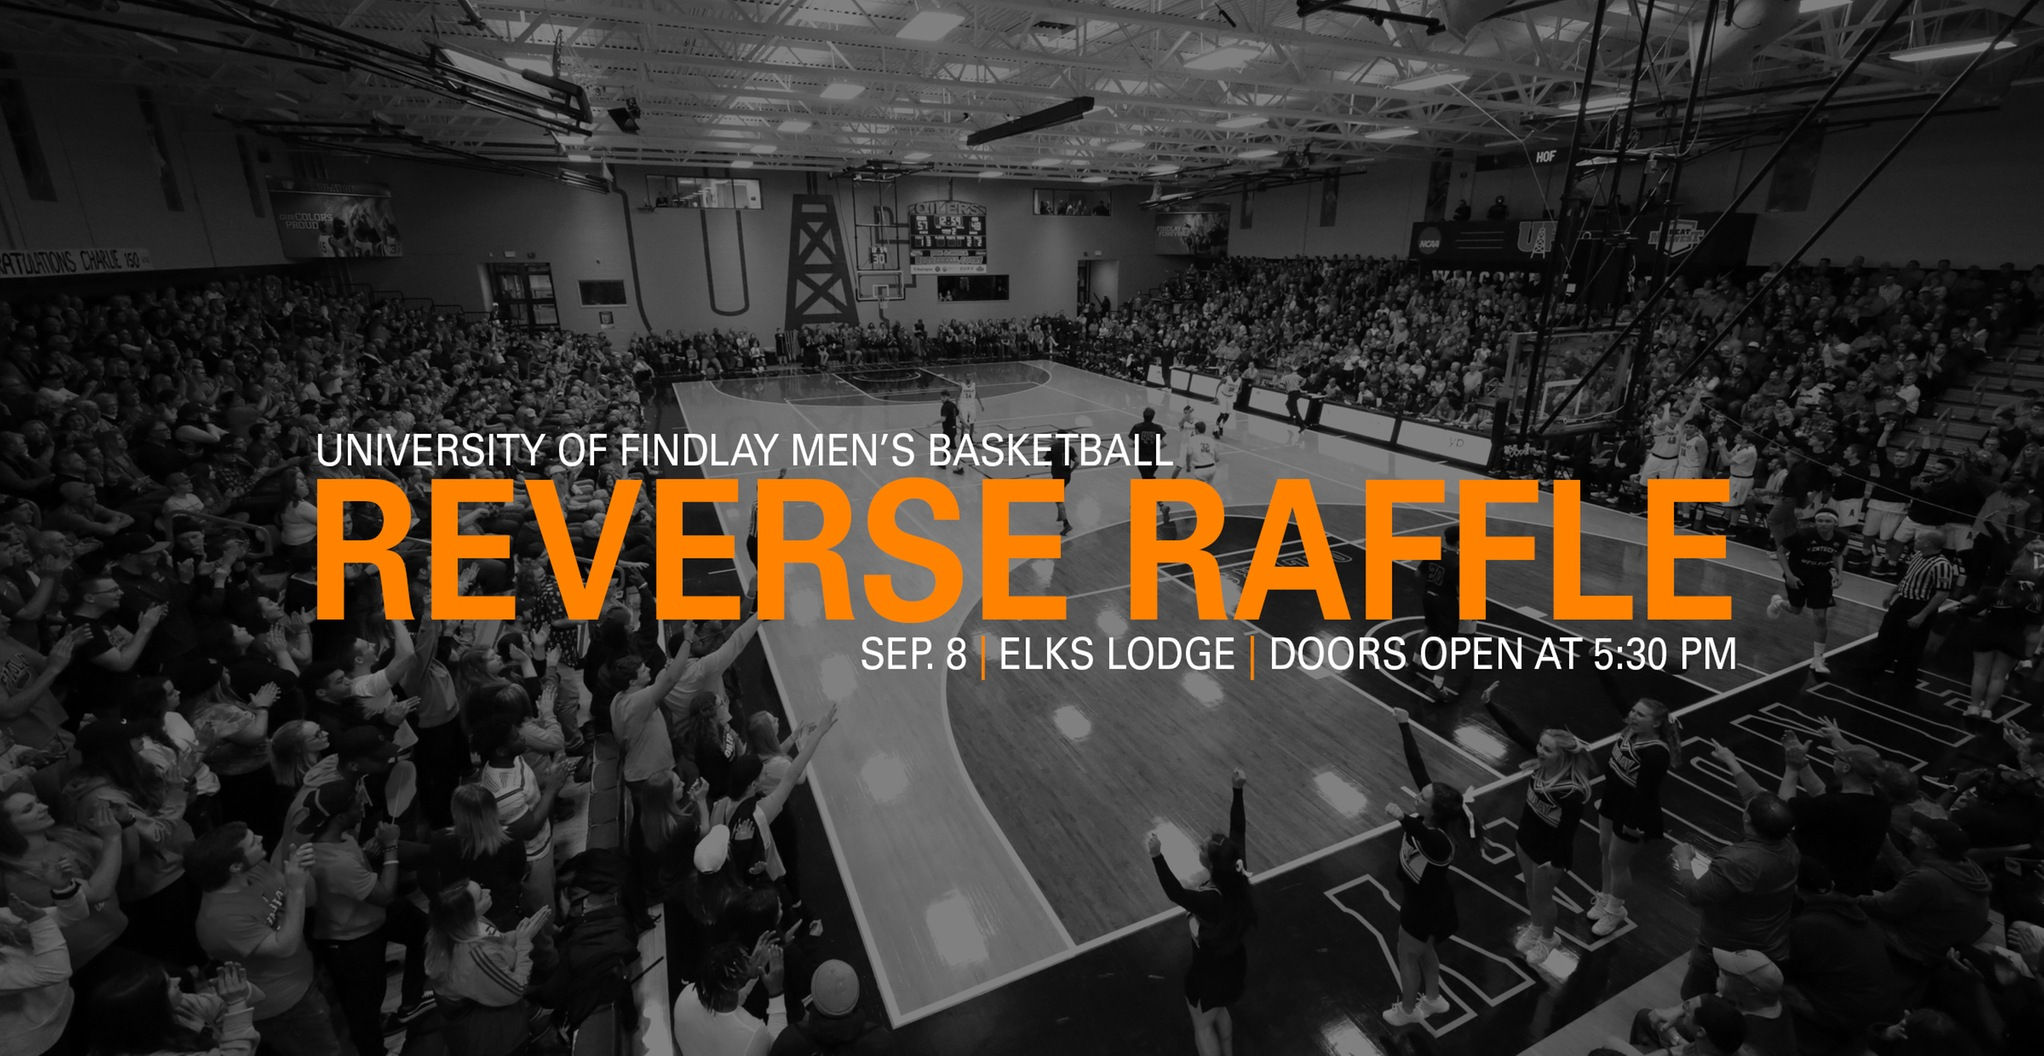 Men's Basketball Reverse Raffle Slated for Sep. 8